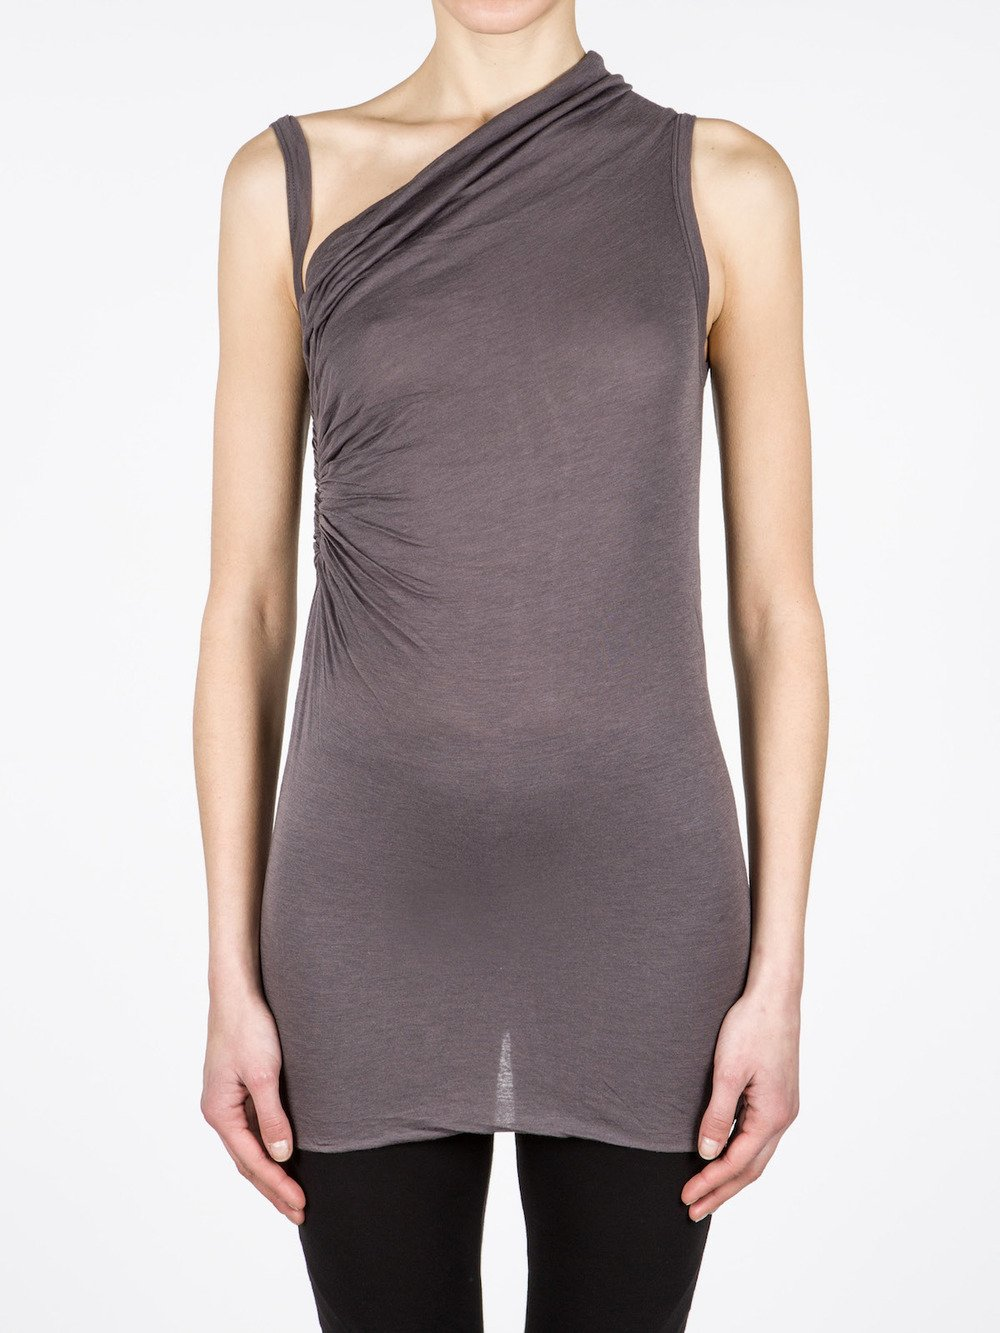 RICK OWENS - GREY TOP